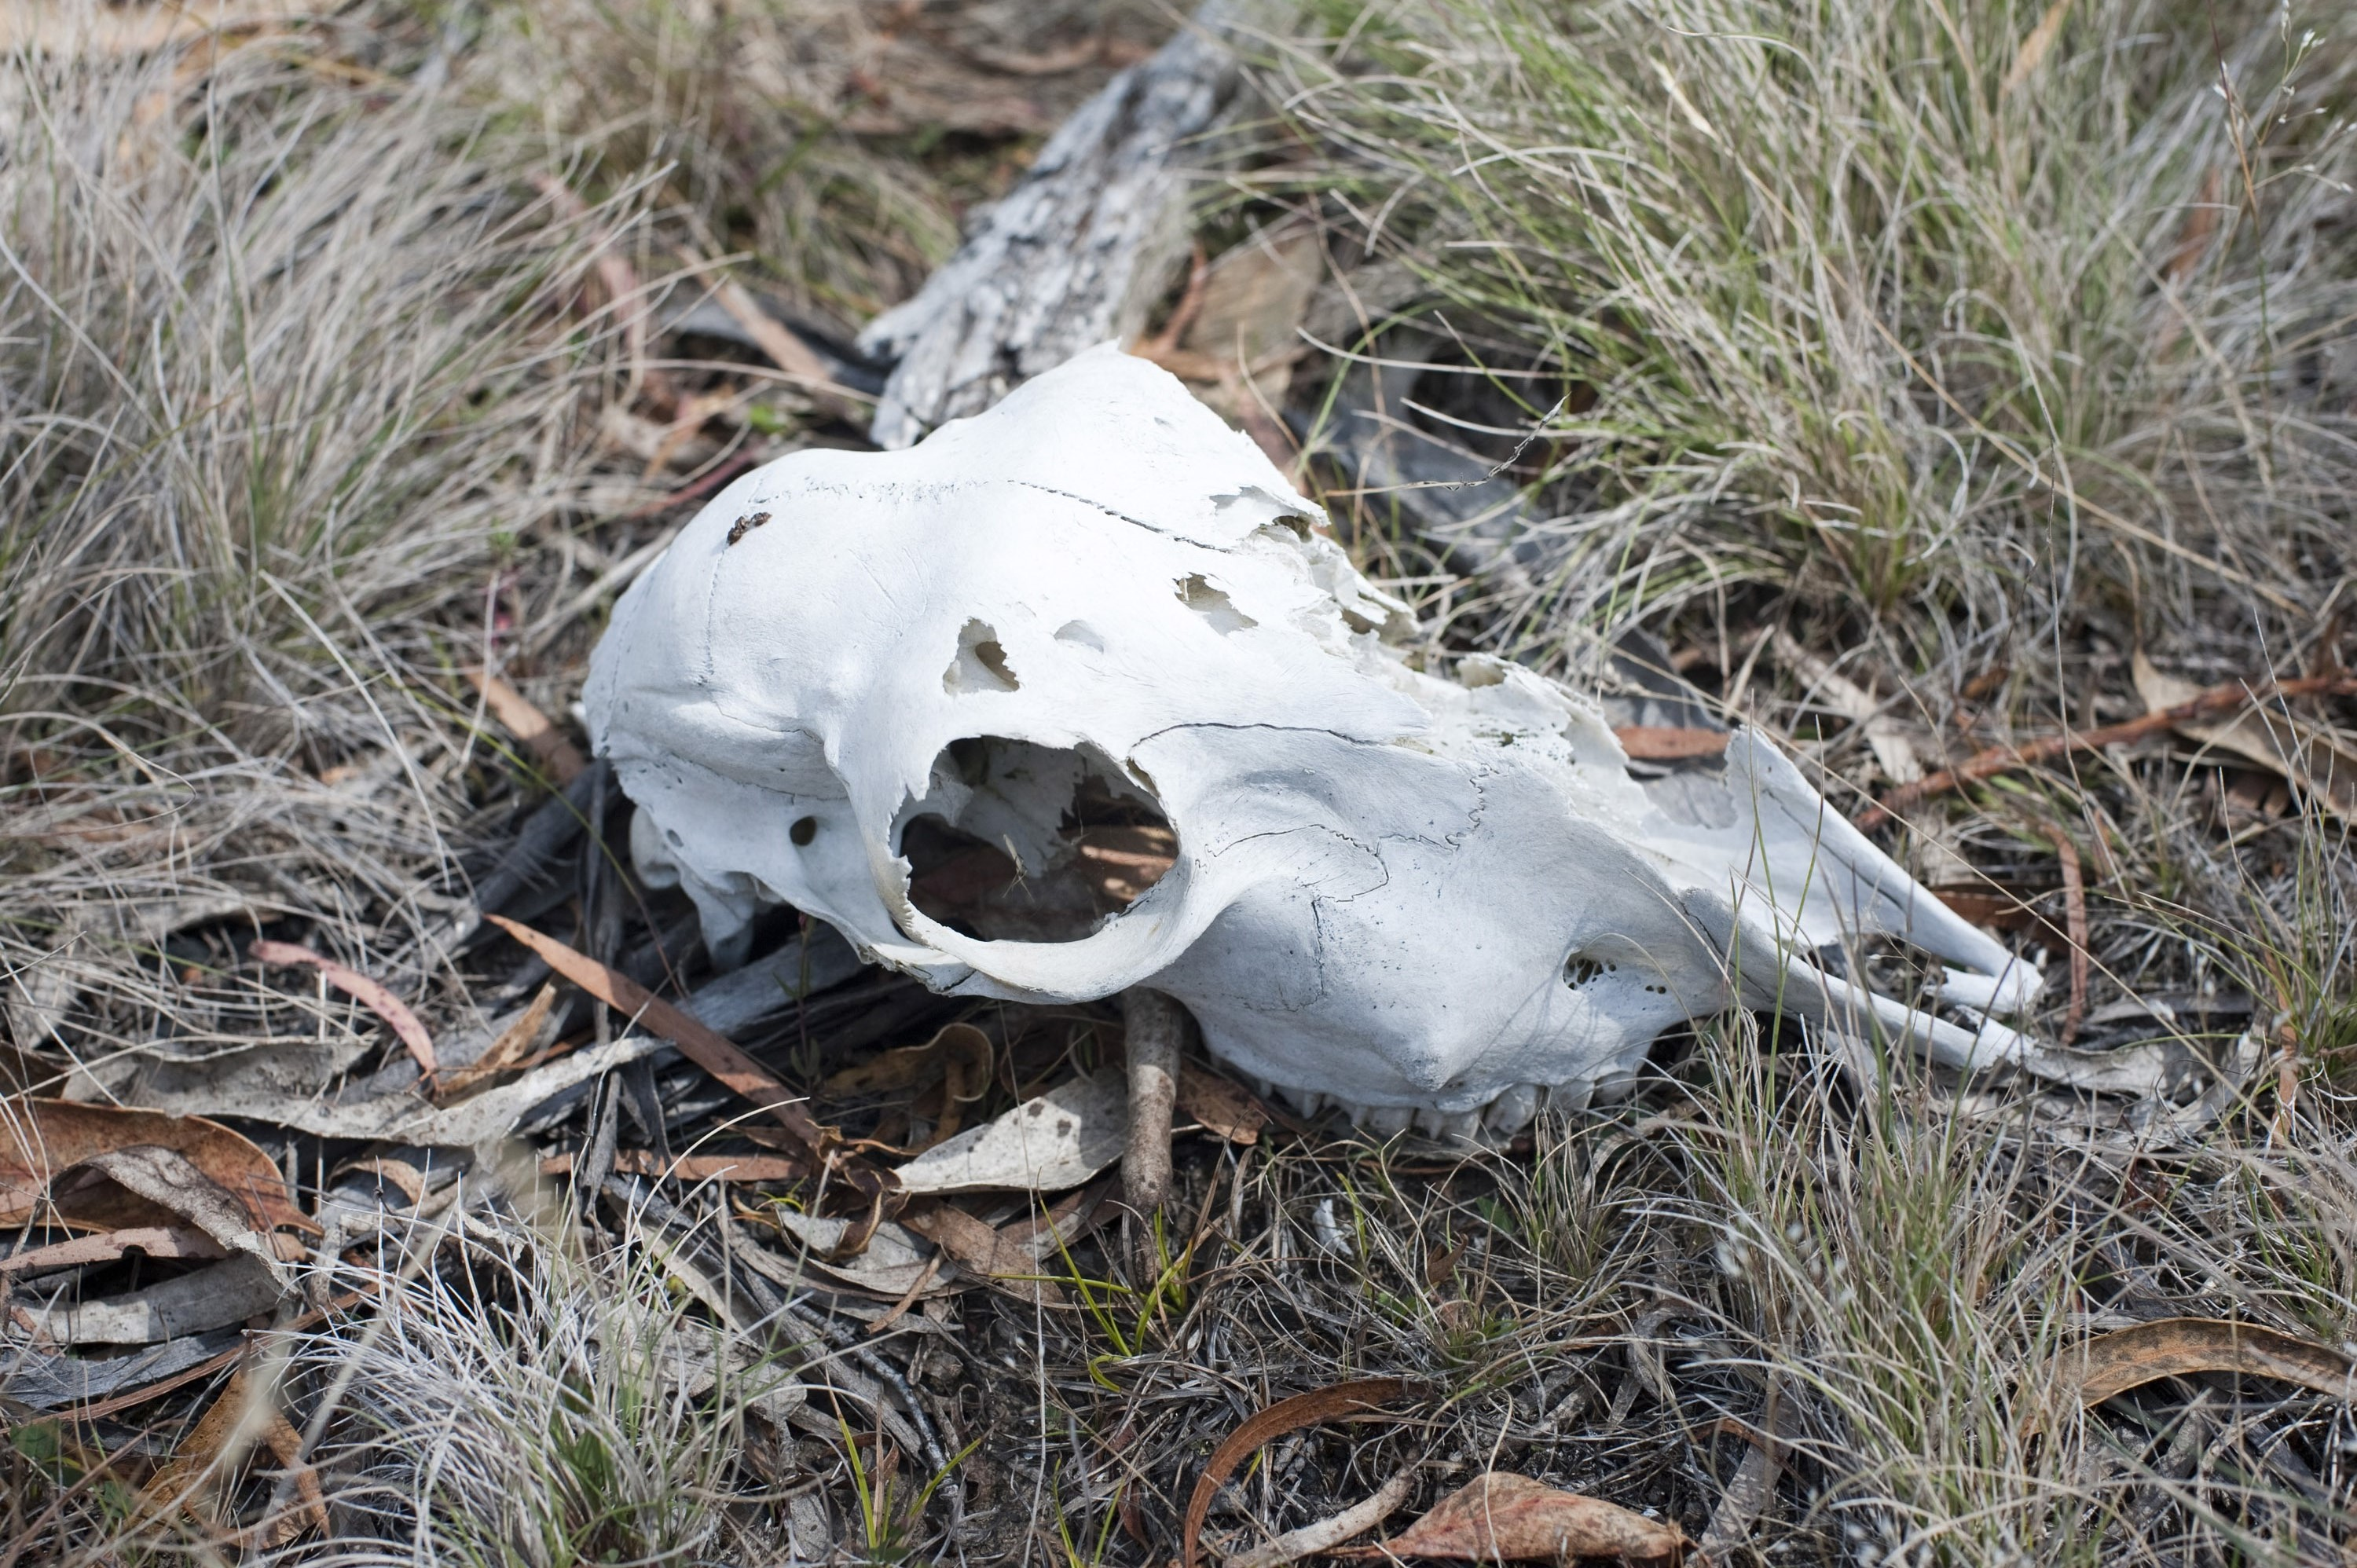 Bleached white bones of an animal skull lying on the ground, a victim of predation or death by disease or natural causes